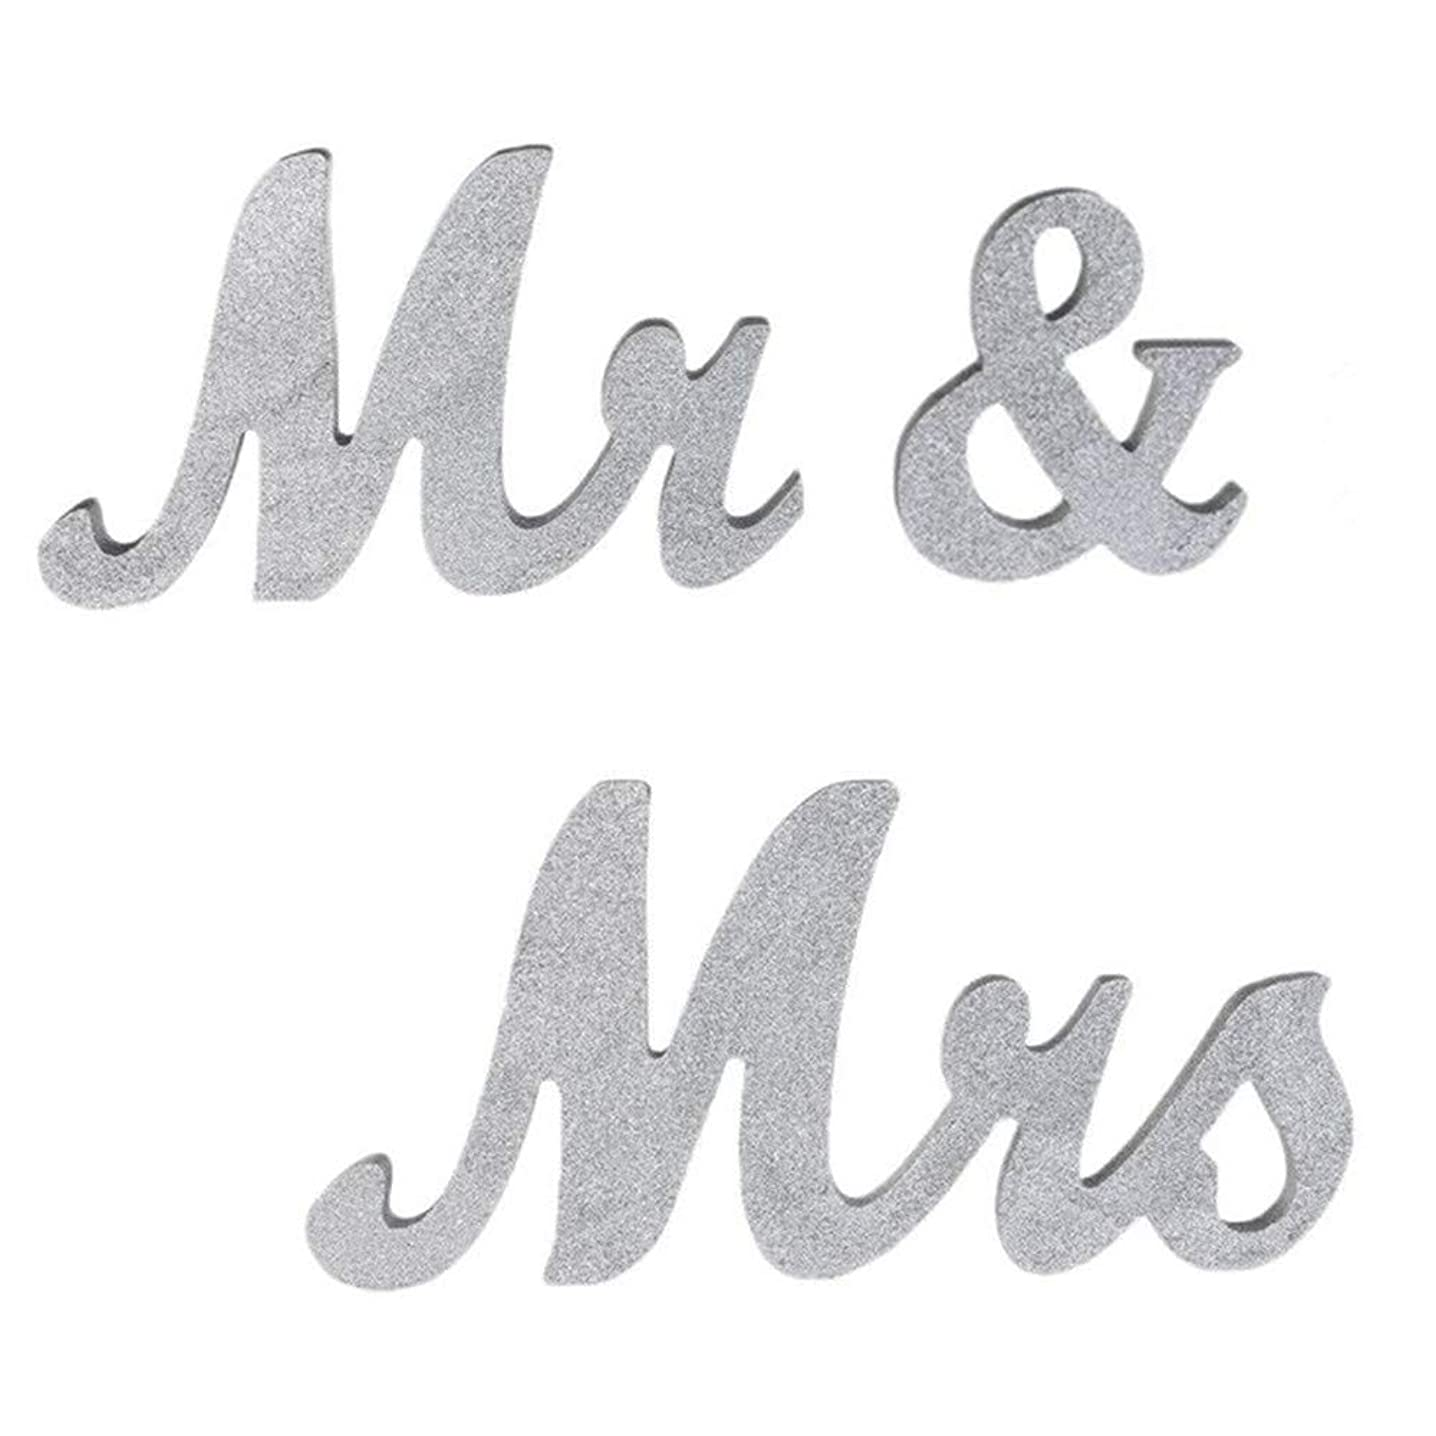 senover Mr and Mrs Sign Wedding Sweetheart Table Decorations,Mr and Mrs Letters Decorative Letters for Wedding Photo Props Party Banner Decoration,Wedding Shower Gift (Silver Glitter) stmibixwm